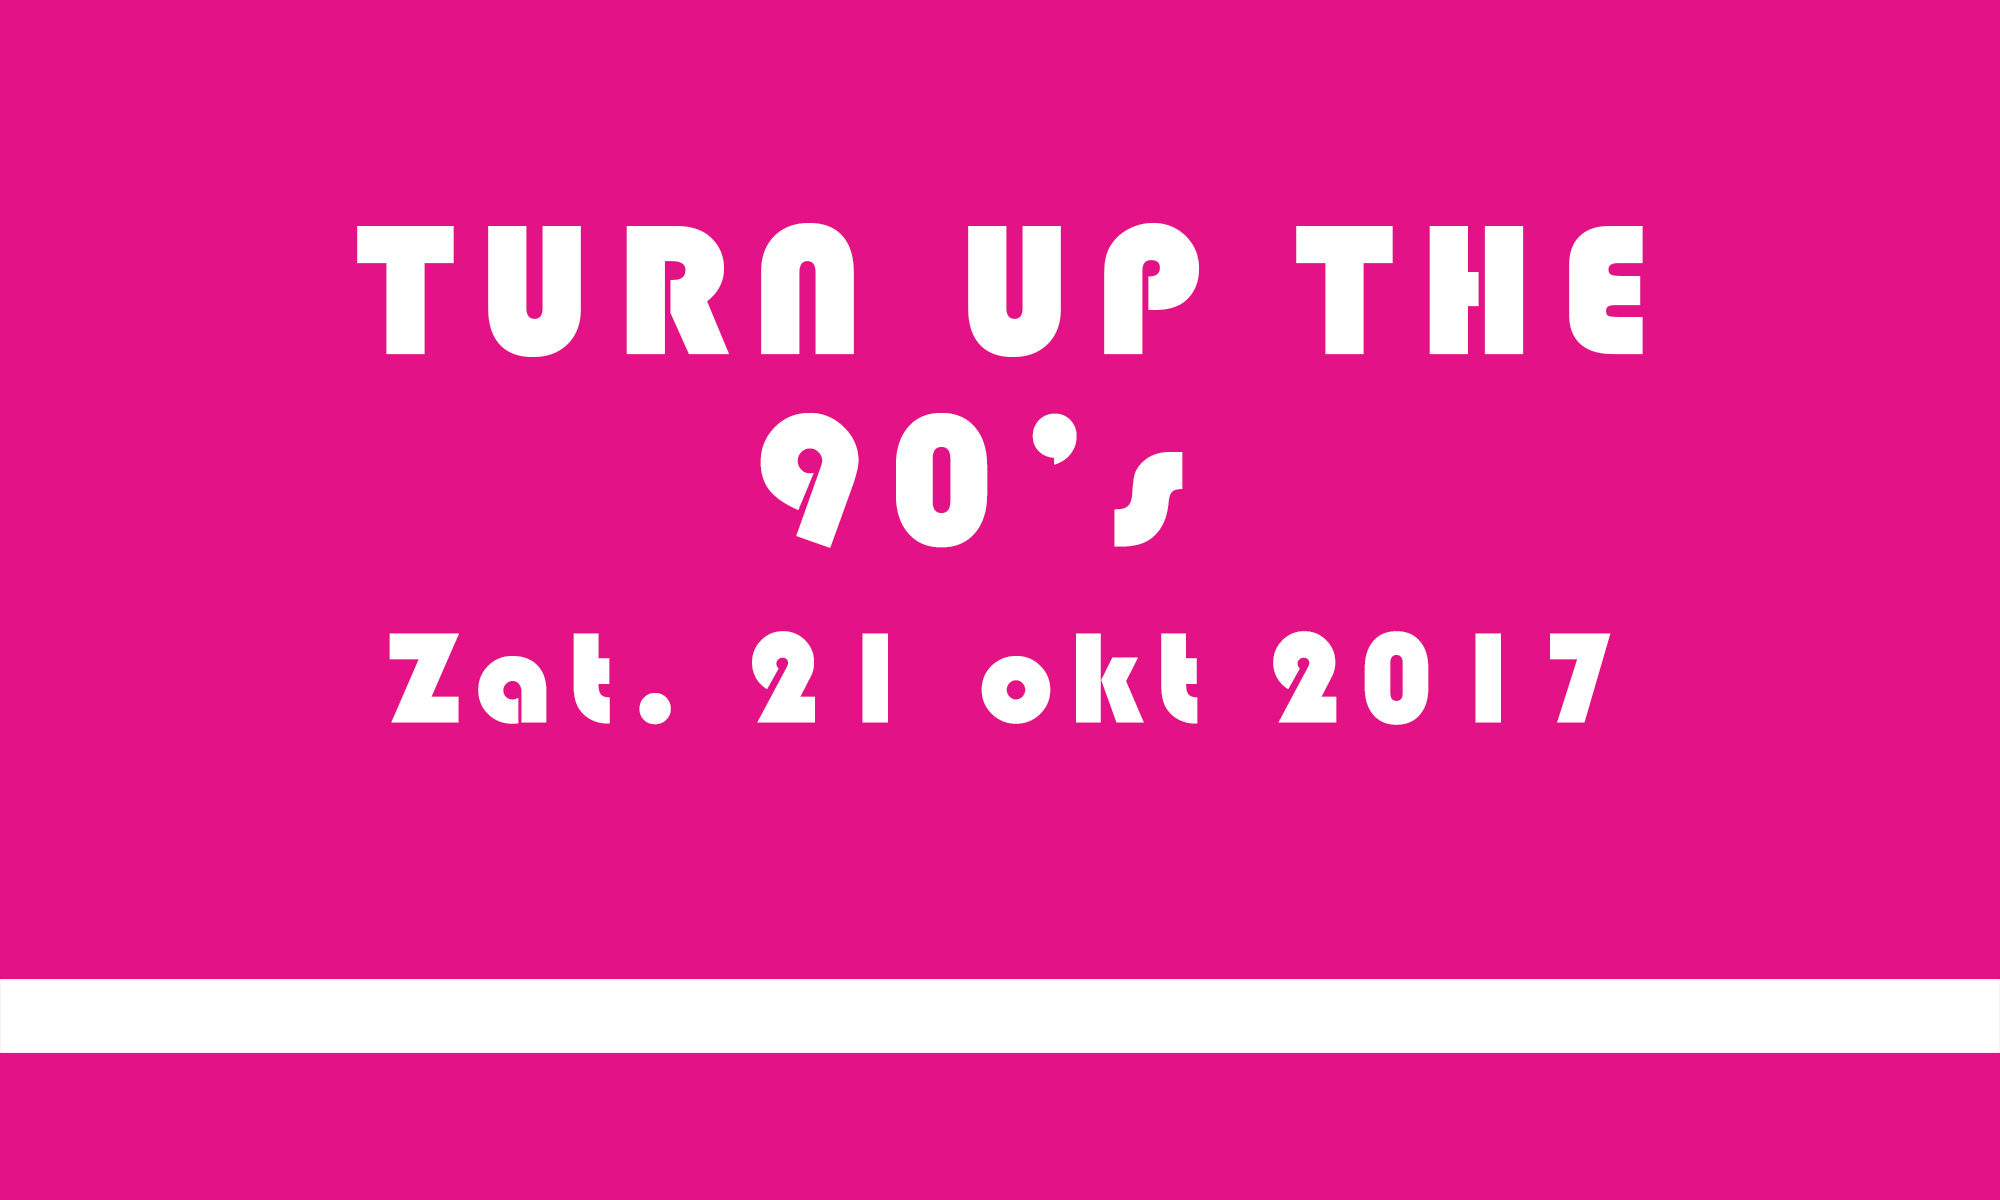 Turn Up The 90's